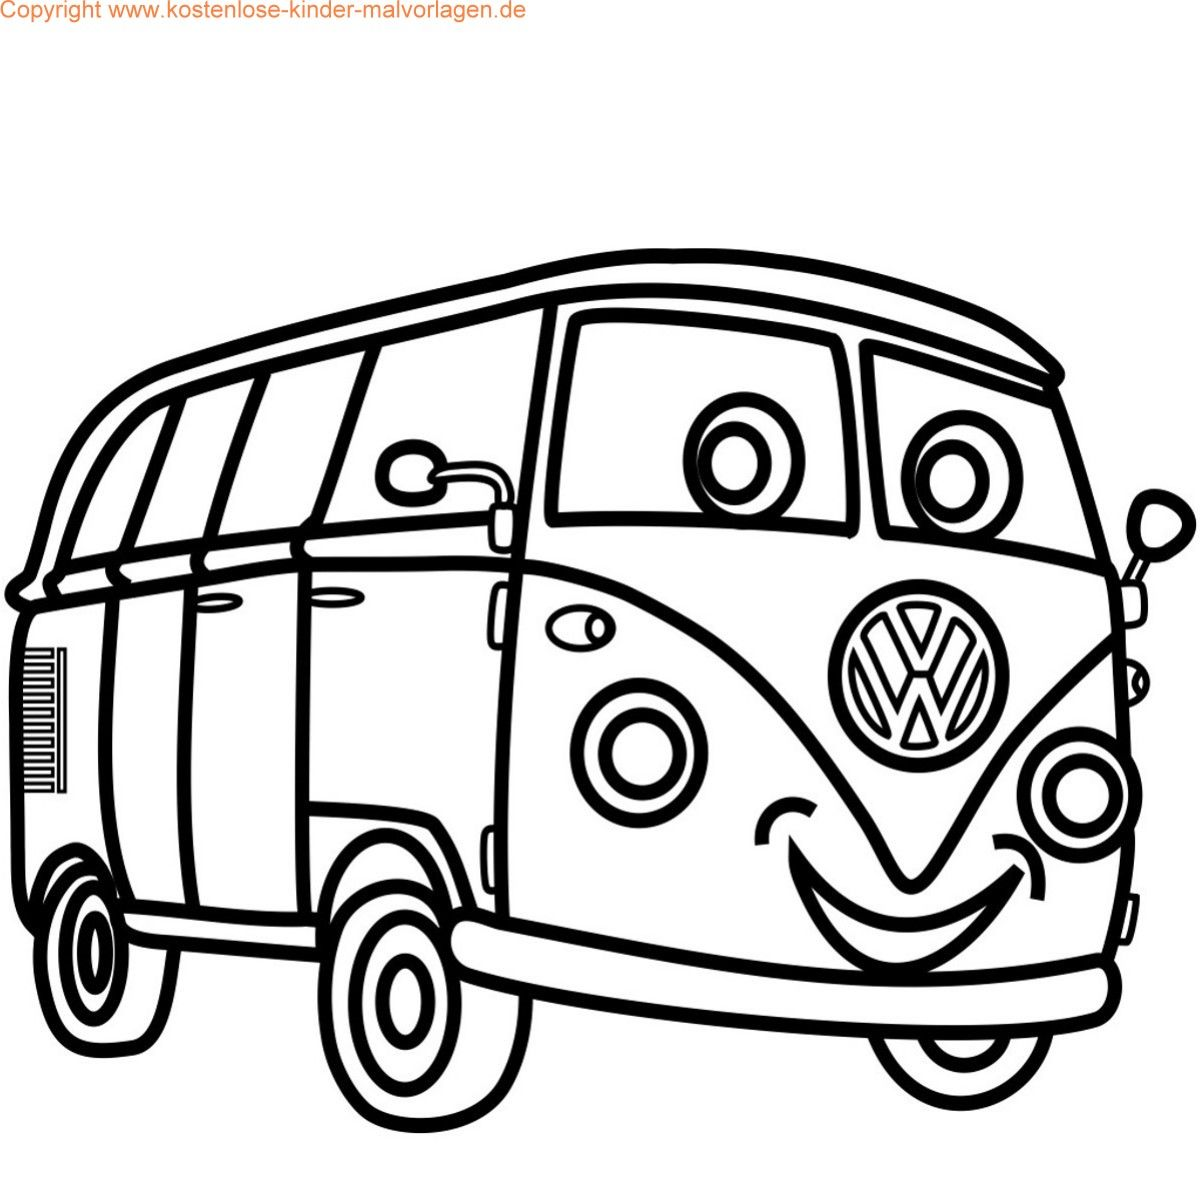 Ausmalbilder Auto Zeichen : Pin Kostenlose Auto Malvorlage Ausmalbild Car Coloring Pages On